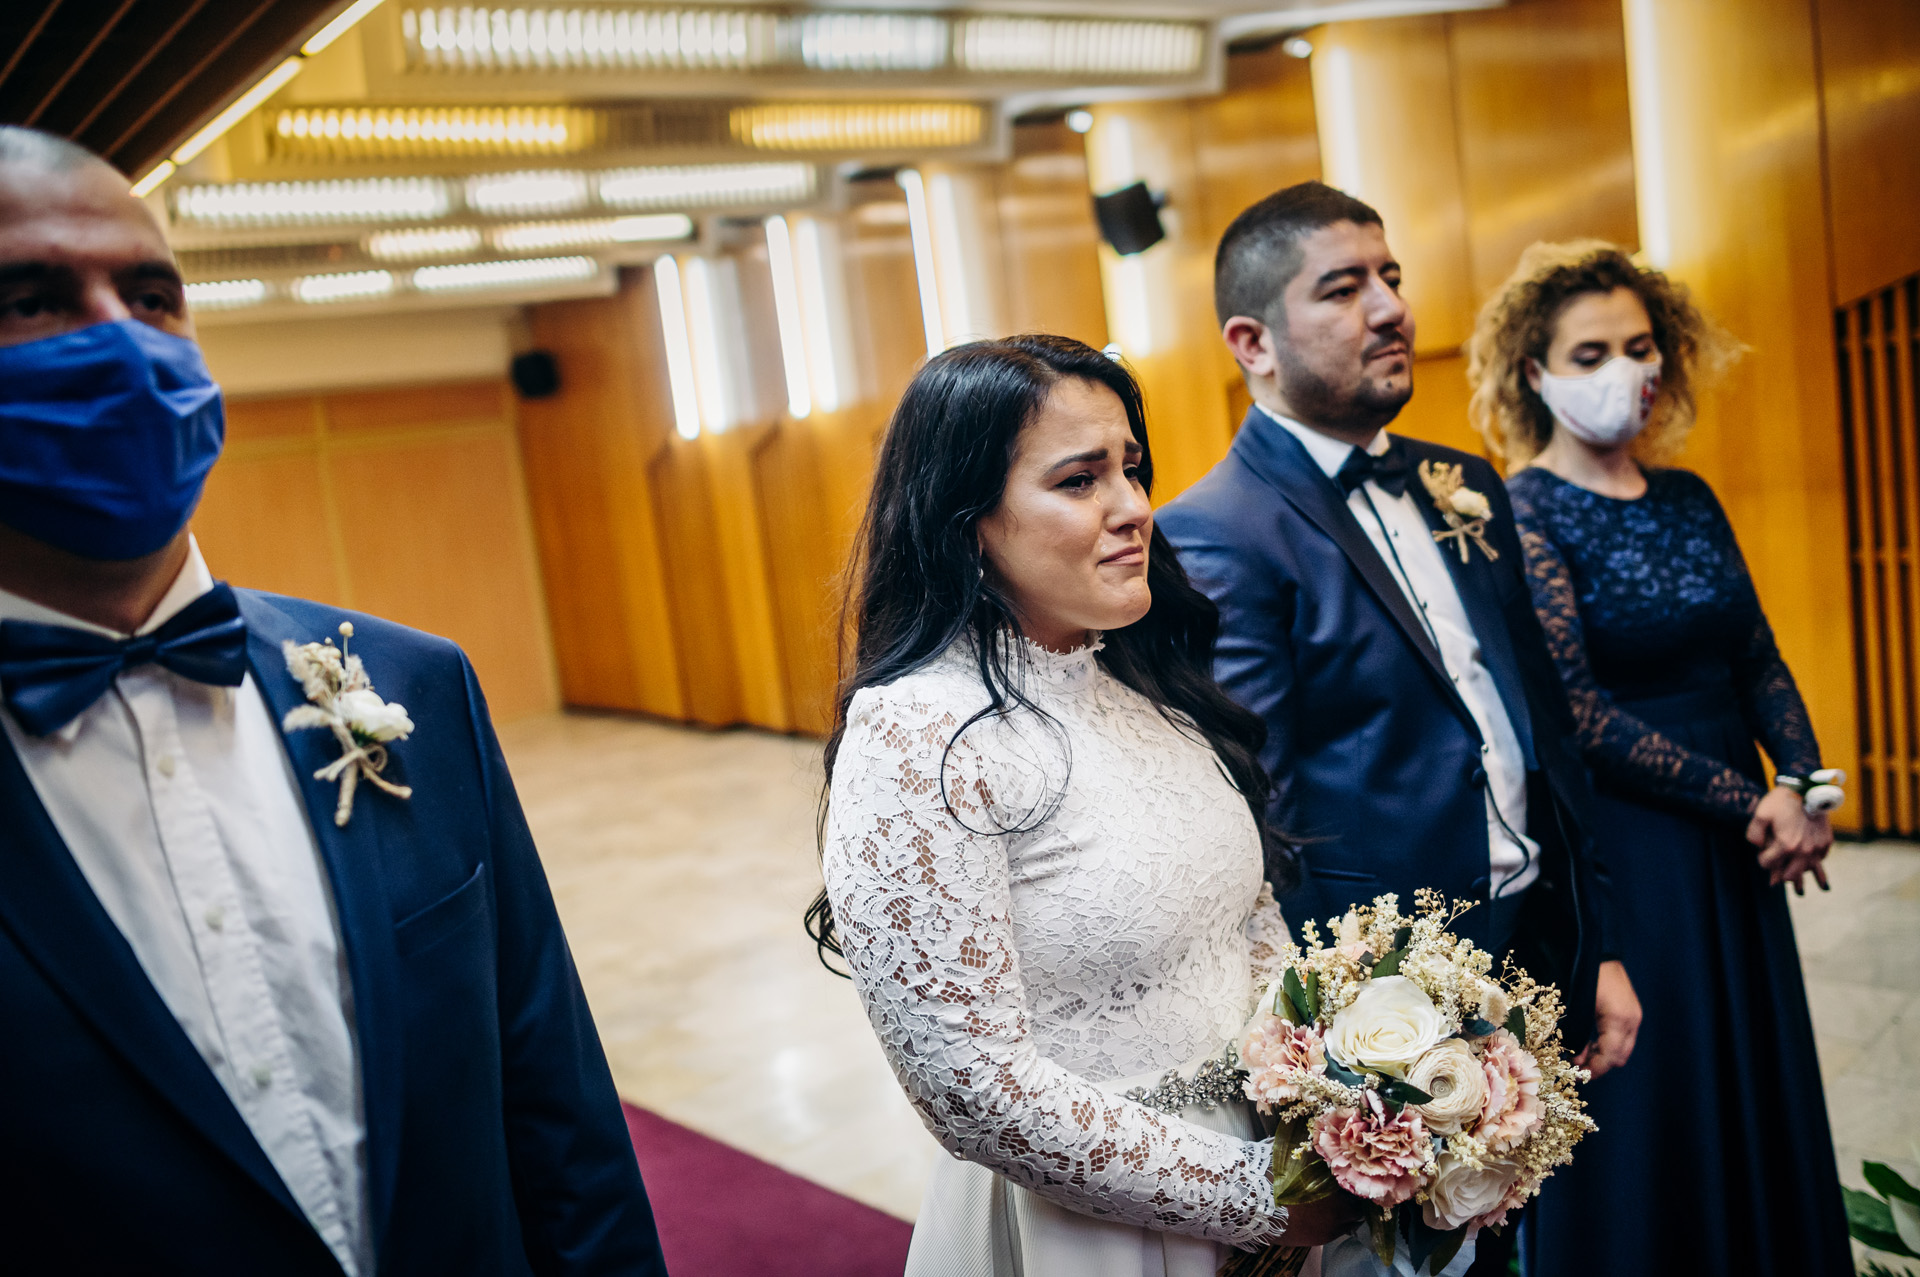 Wedding Ceremony Photography of Sofia, Bulgaria | The bride is overcome by the magnitude of the moment